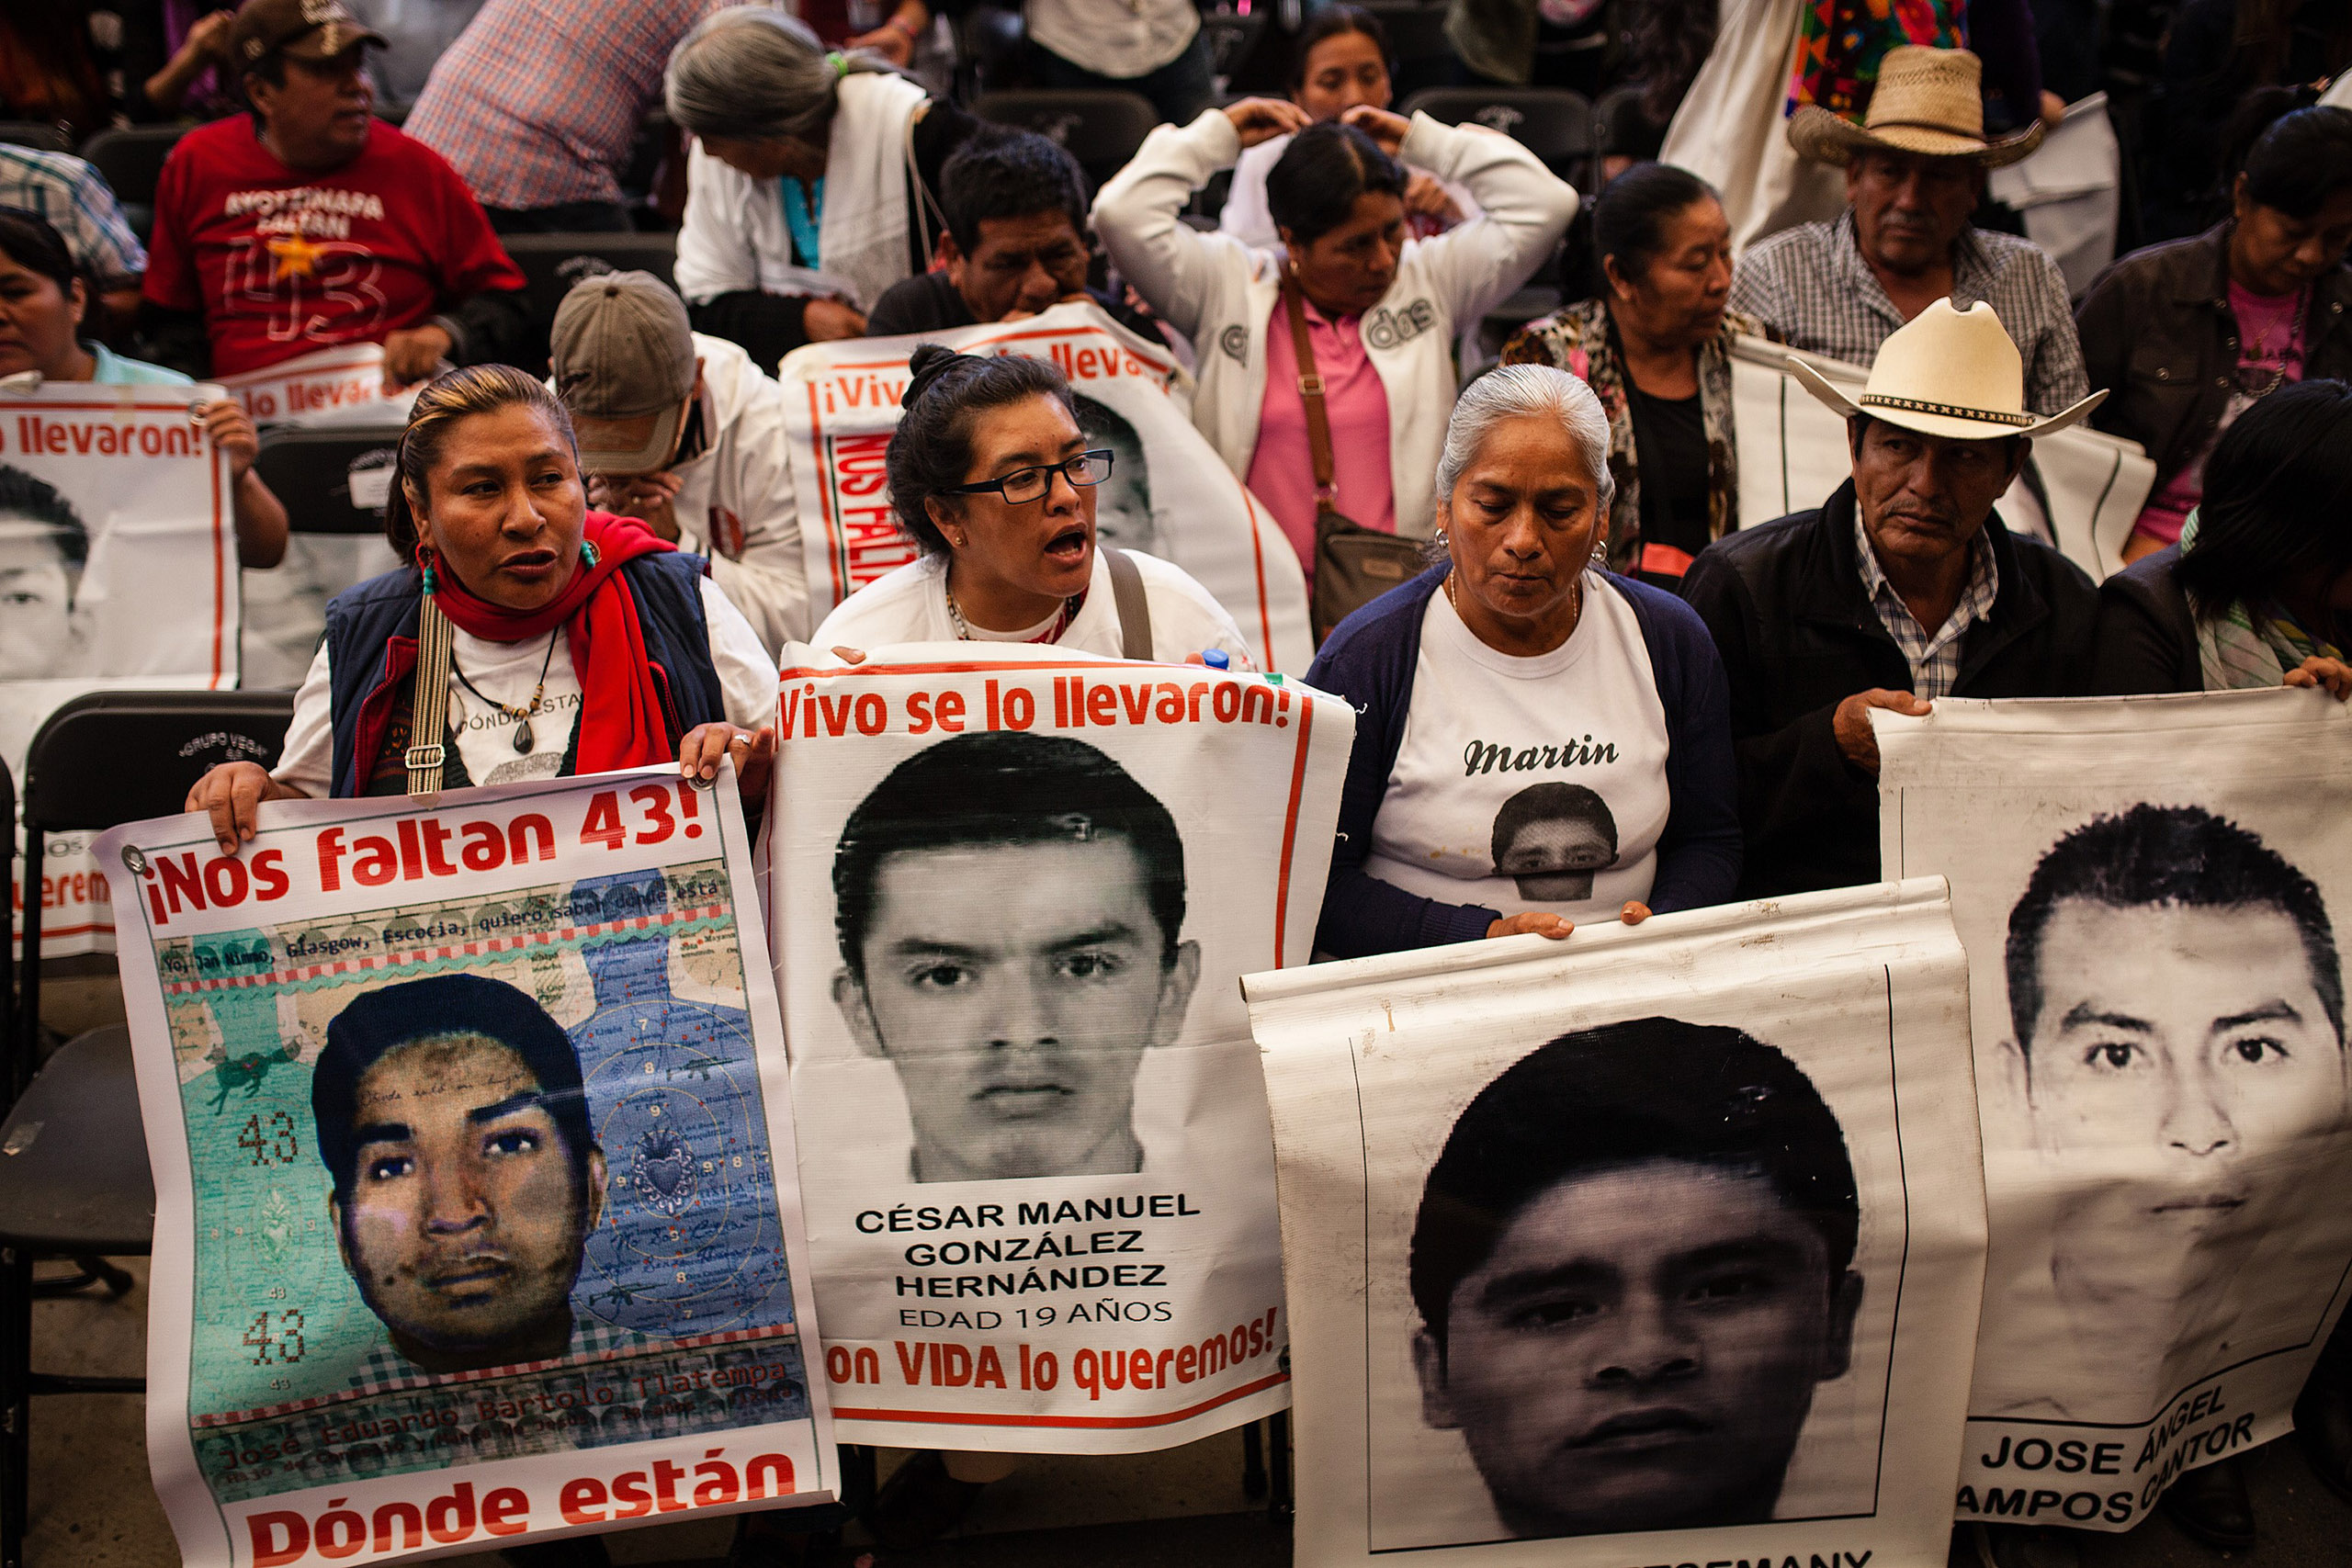 Relatives of the 43 missing students in Ayotzinapa stage a protest during the news conference of the Interdisciplinary Group of Independent Experts to publicize details of the report about the disappearances in Mexico City, Mexico, April 24, 2016.